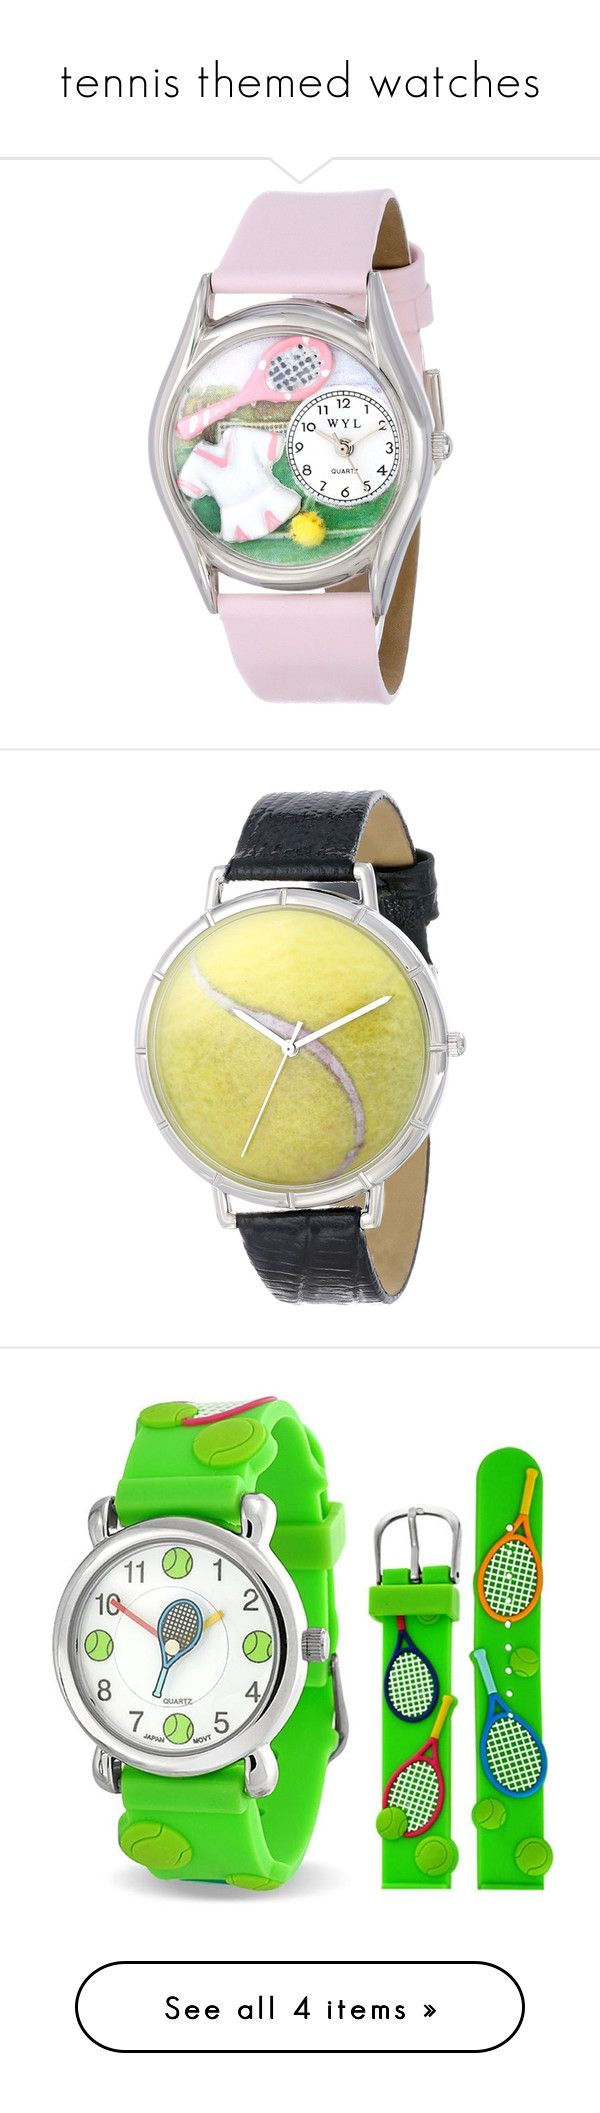 """""""tennis themed watches"""" by tennisidentity ❤ liked on Polyvore featuring jewelry, watches, leather jewelry, pink leather watches, whimsical watches, pink watches, hand crafted jewelry, silvertone watches, black wrist watch and sports watches"""